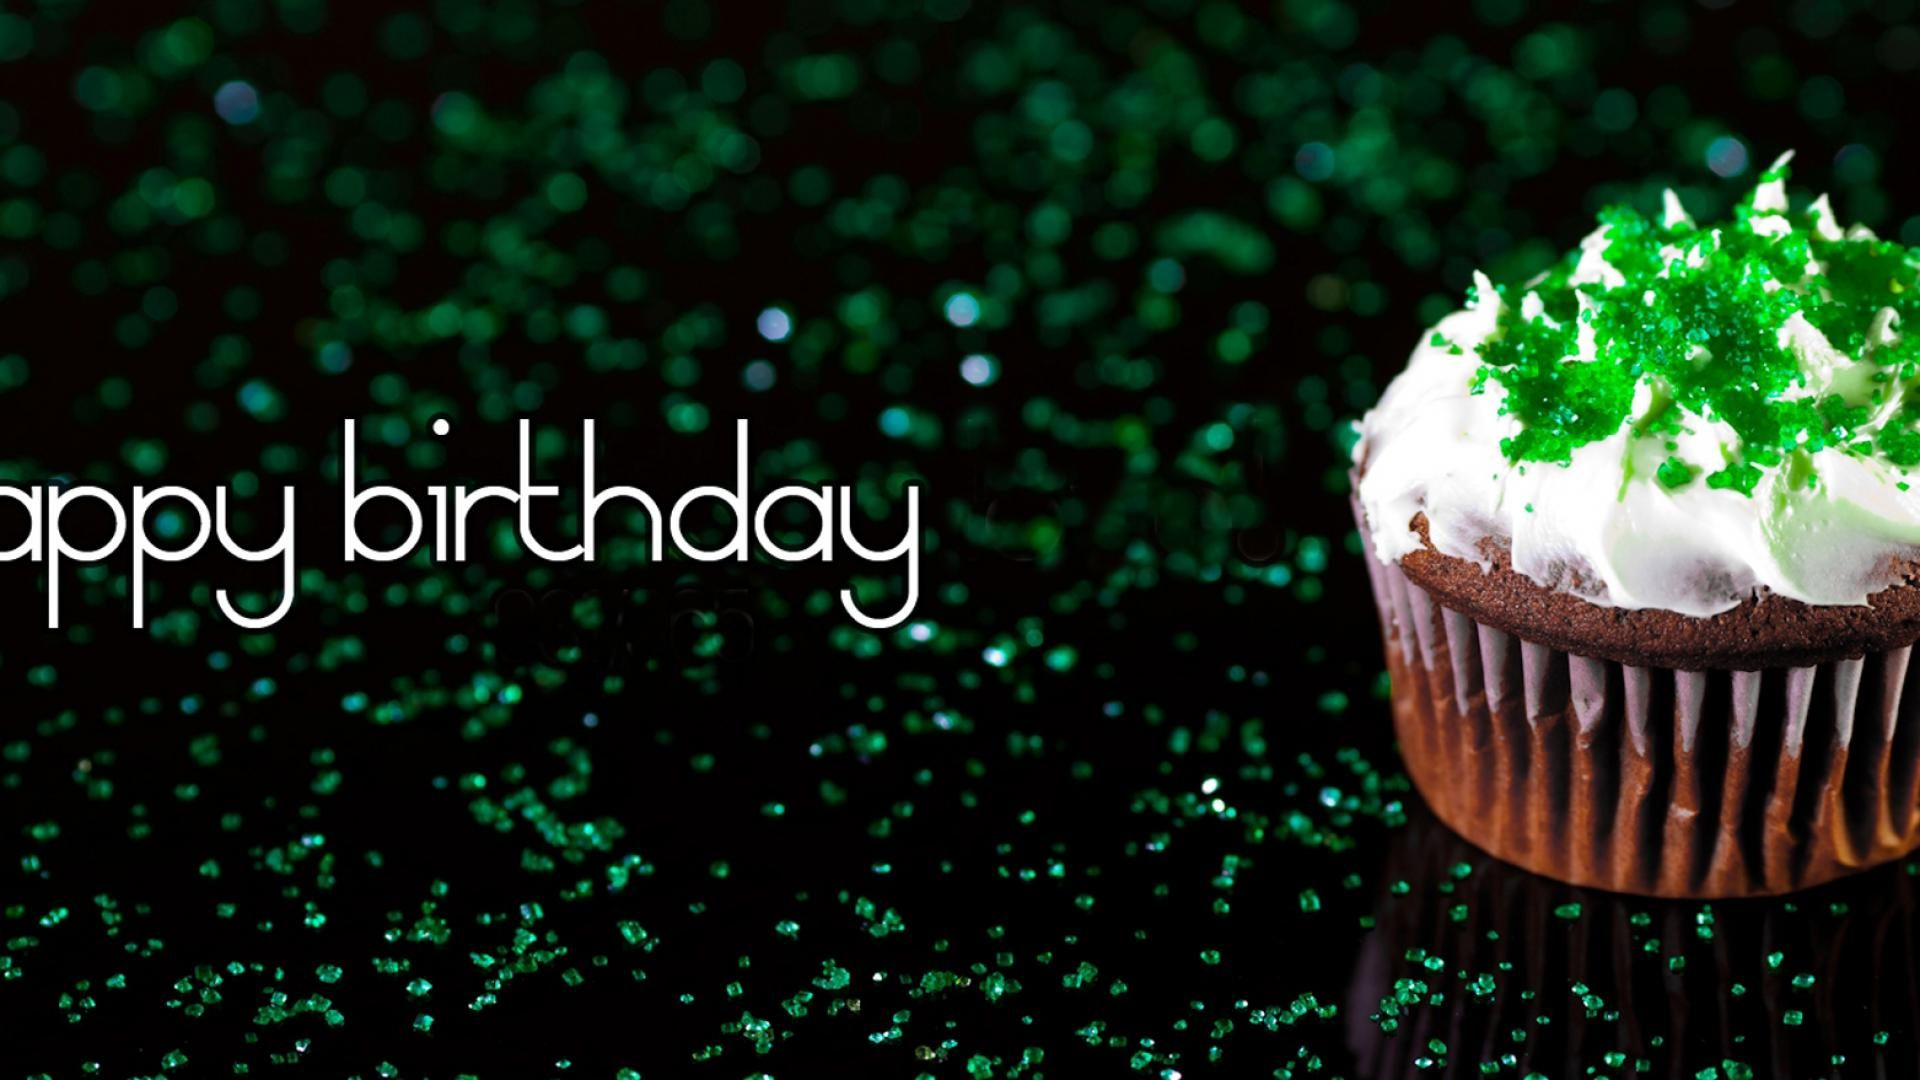 Happy Birthday Background Hd Cb 1920x1080 Download Hd Wallpaper Wallpapertip